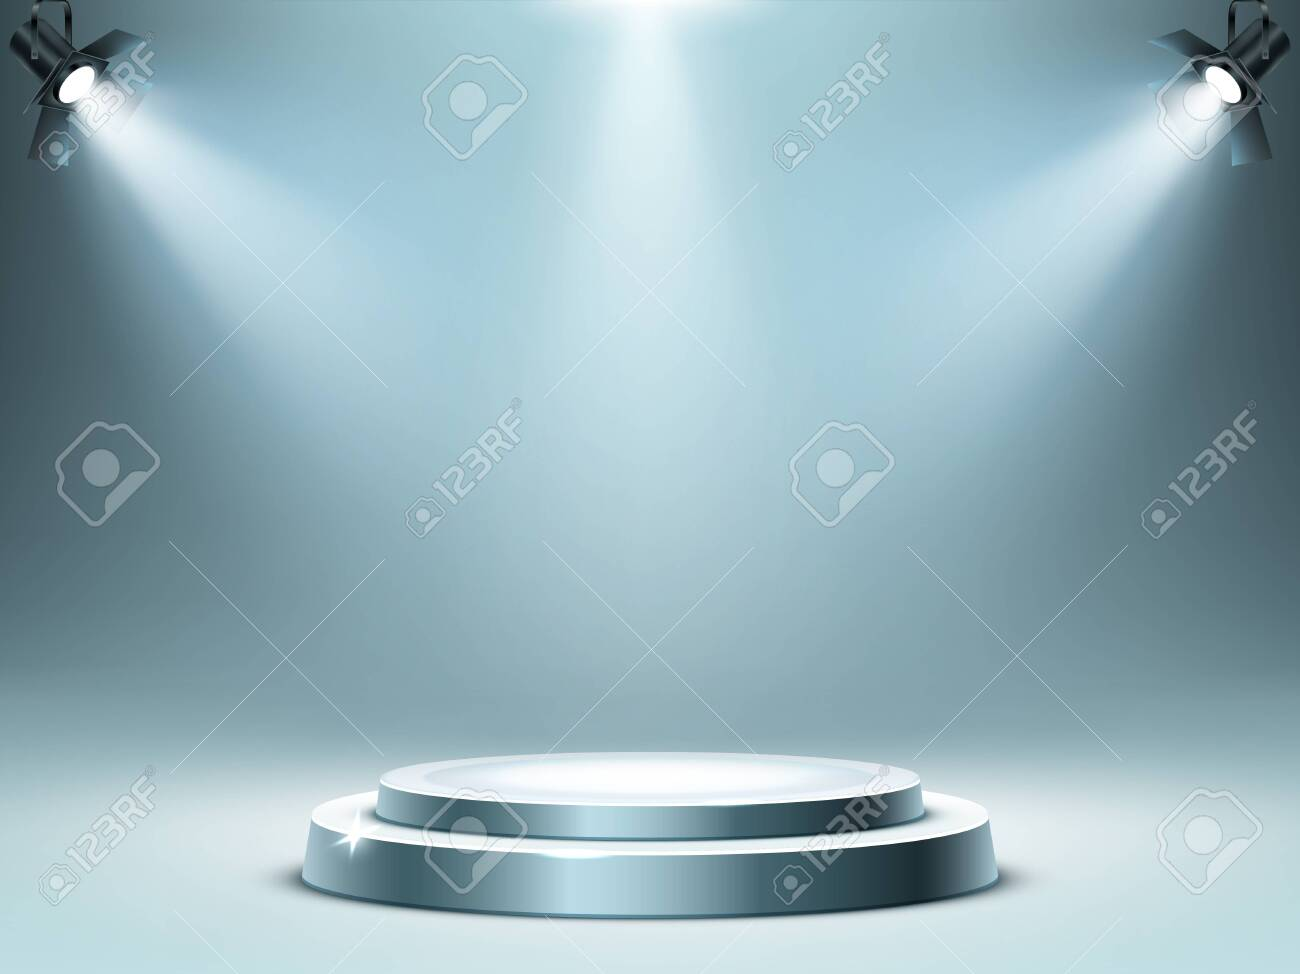 Round podium or stage in rays of spotlights, realistic vector illustration. Pedestal for winner or award ceremony, empty platform for presentation, performance or show at night club, soon coming - 141795628